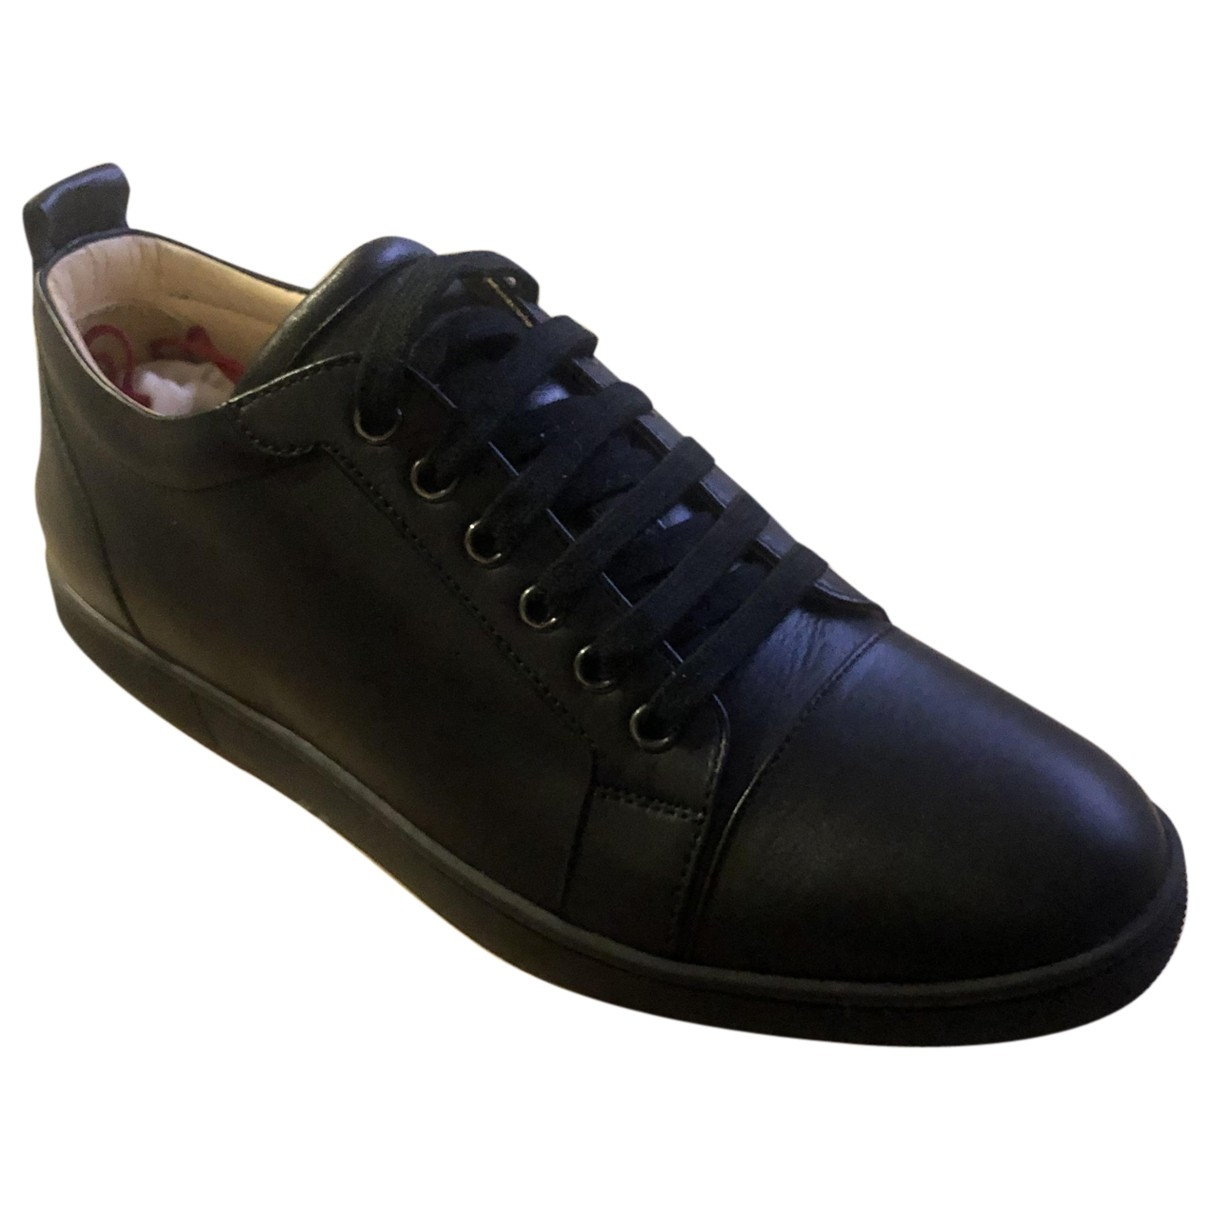 Christian Louboutin Louis Black Leather Trainers for Men 41.5 EU